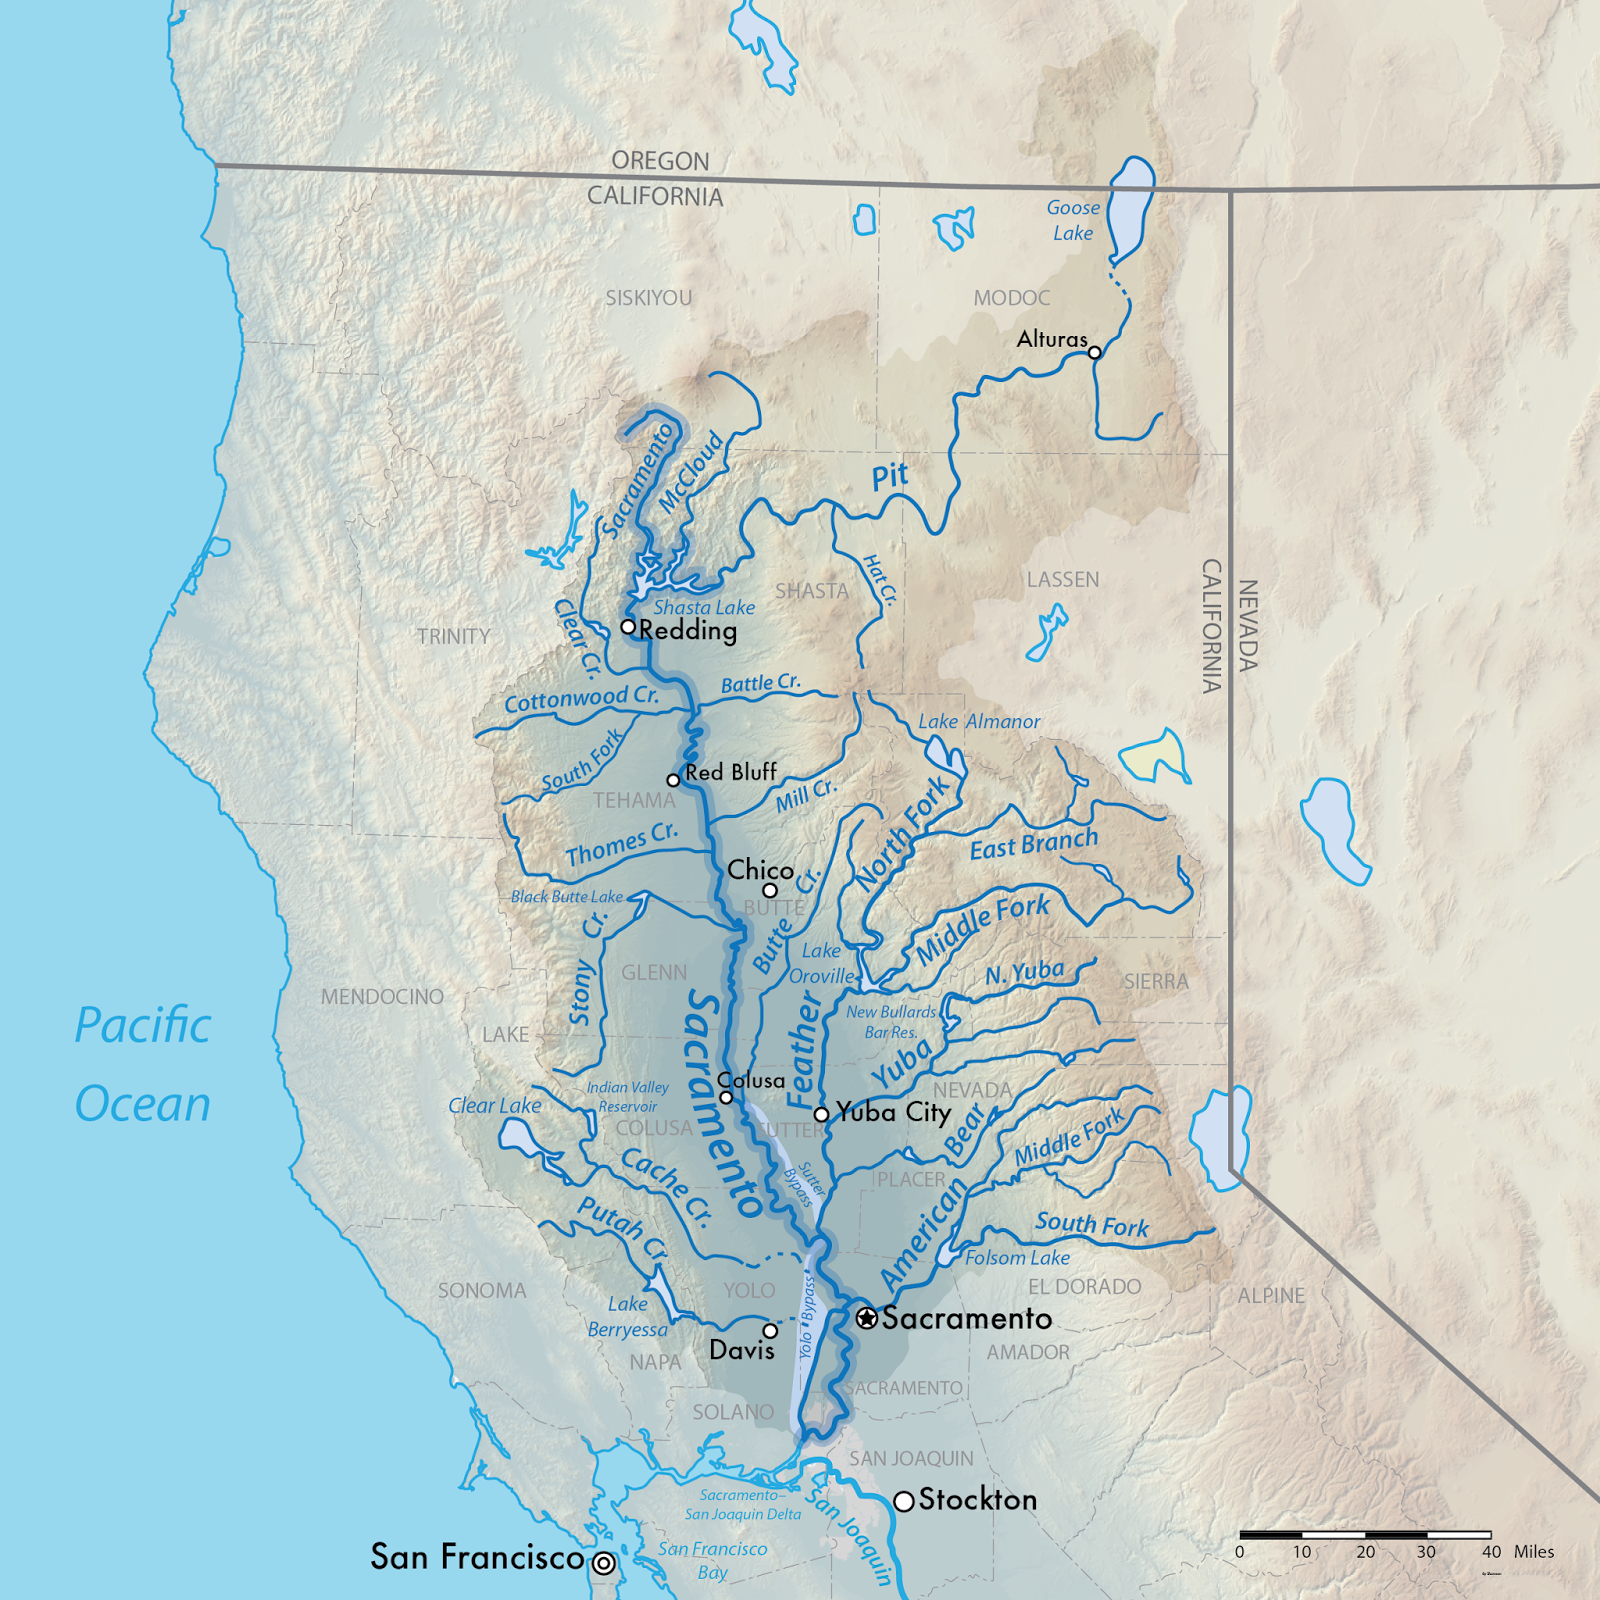 The Sacramento River watershed. NOTE: Goose Lake on the California/Oregon border is now primarily endorheic, and very rarely feeds into the Pit River, hence the dotted line. An endorheic basin is one that is closed, thereby retaining its waters in lakes, swamps, ponds, etc.